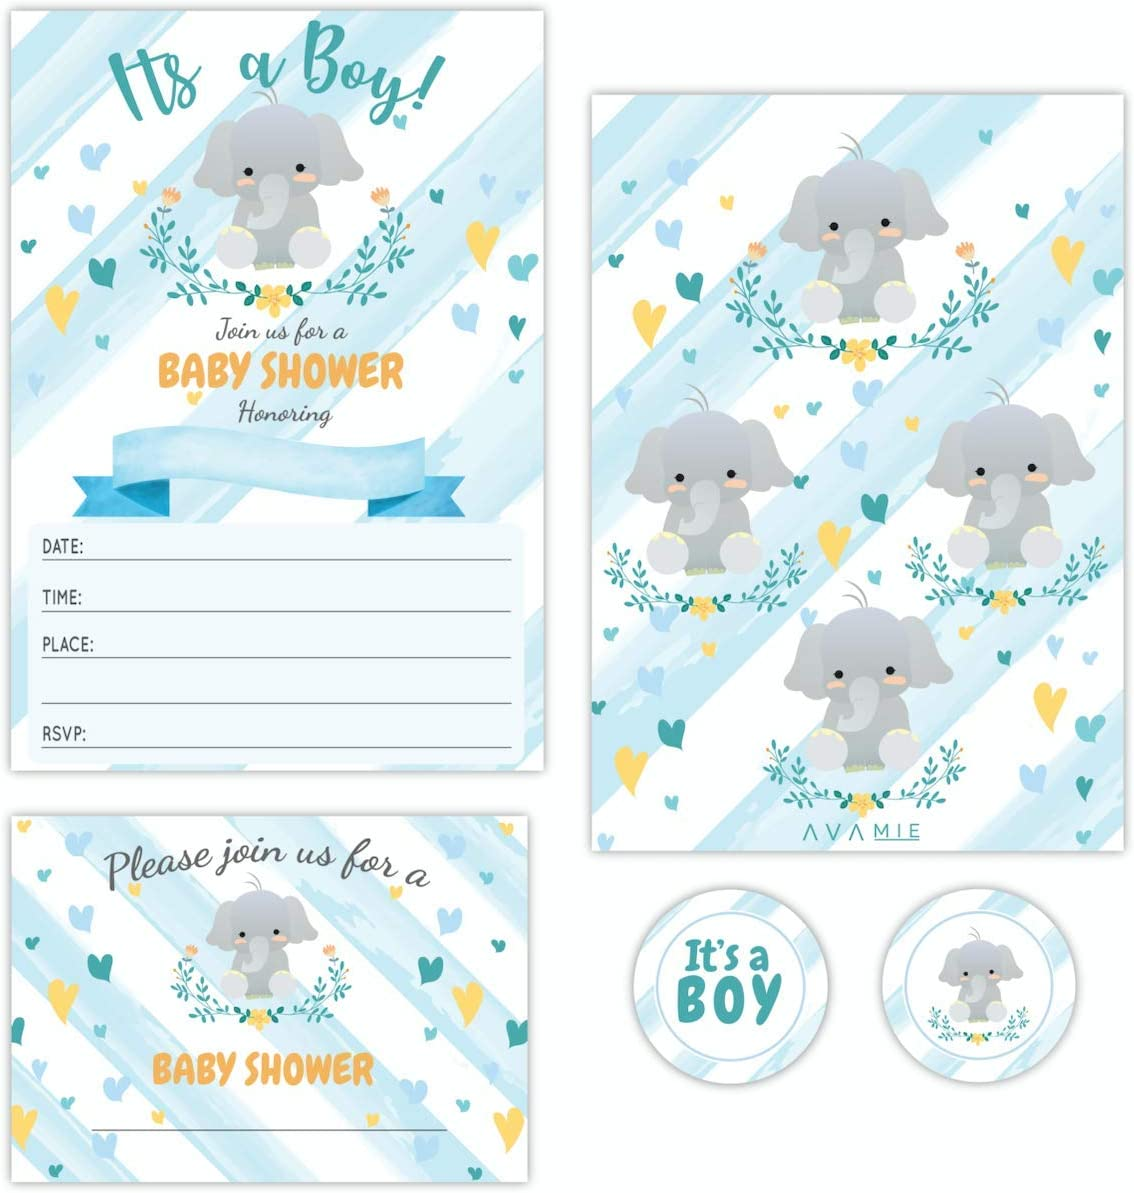 Avamie 20 Pack It's A Boy Blue Elephant Baby Shower Invitations with Envelopes and Stickers, Baby Shower Invitations For Boys